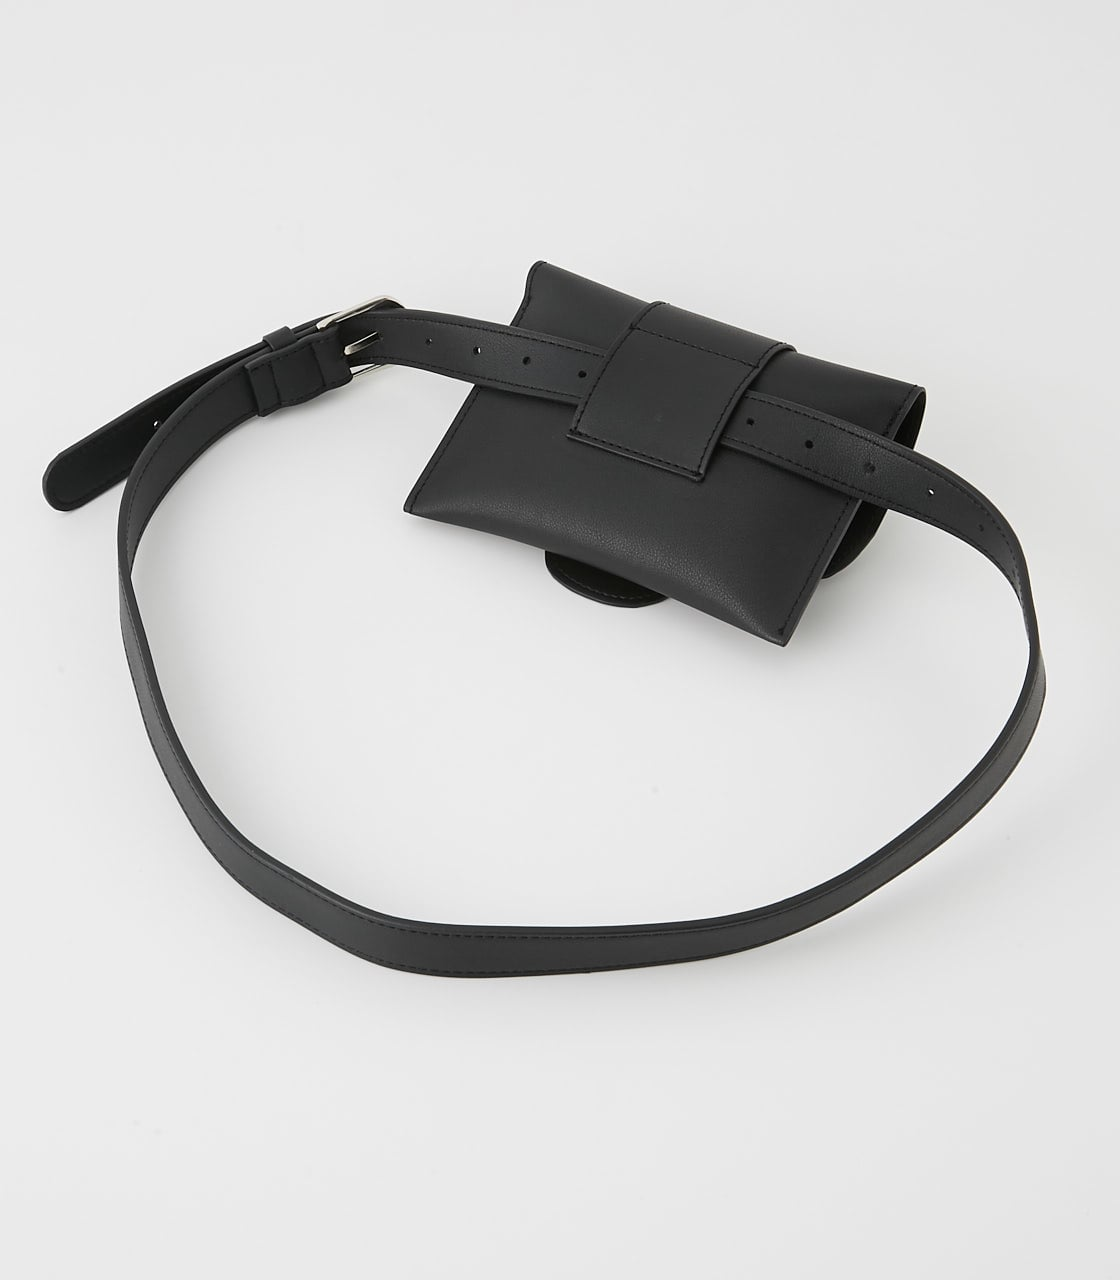 【AZUL BY MOUSSY】SQUARE BUCKLE PORCH SET BELT 詳細画像 BLK 3